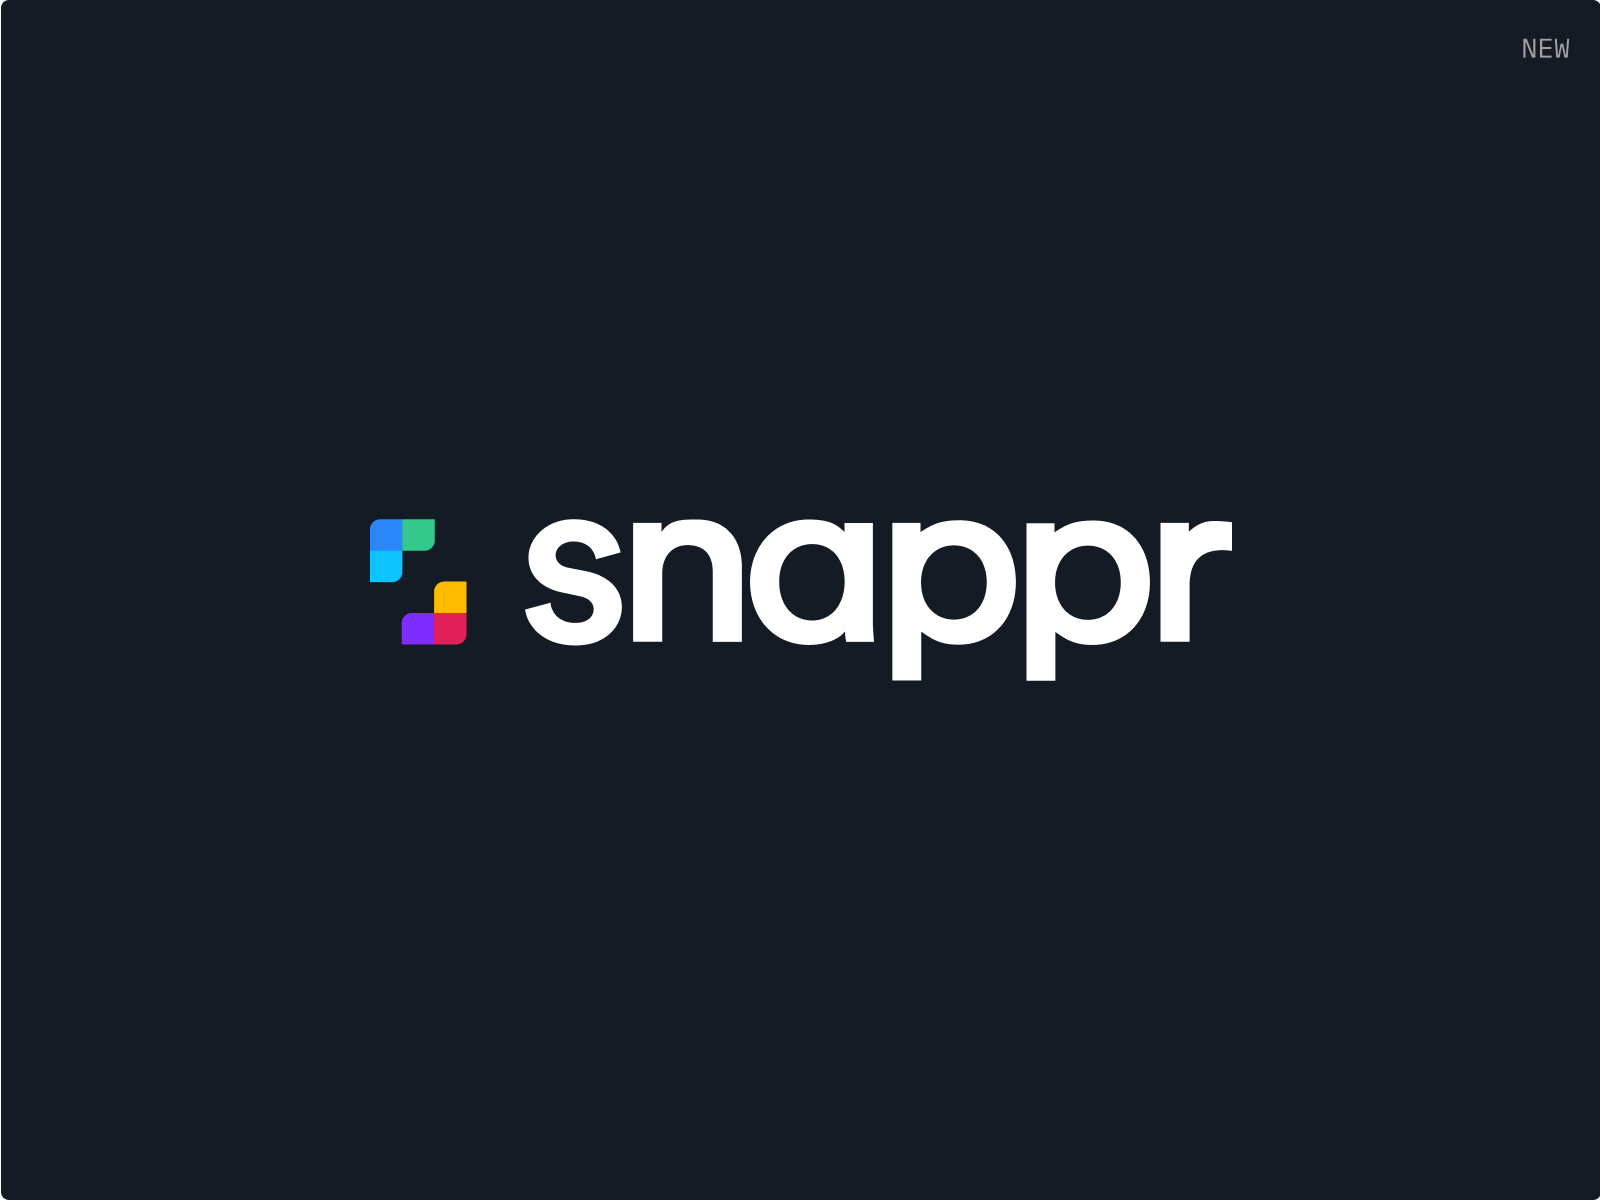 snappr new logo raw studio